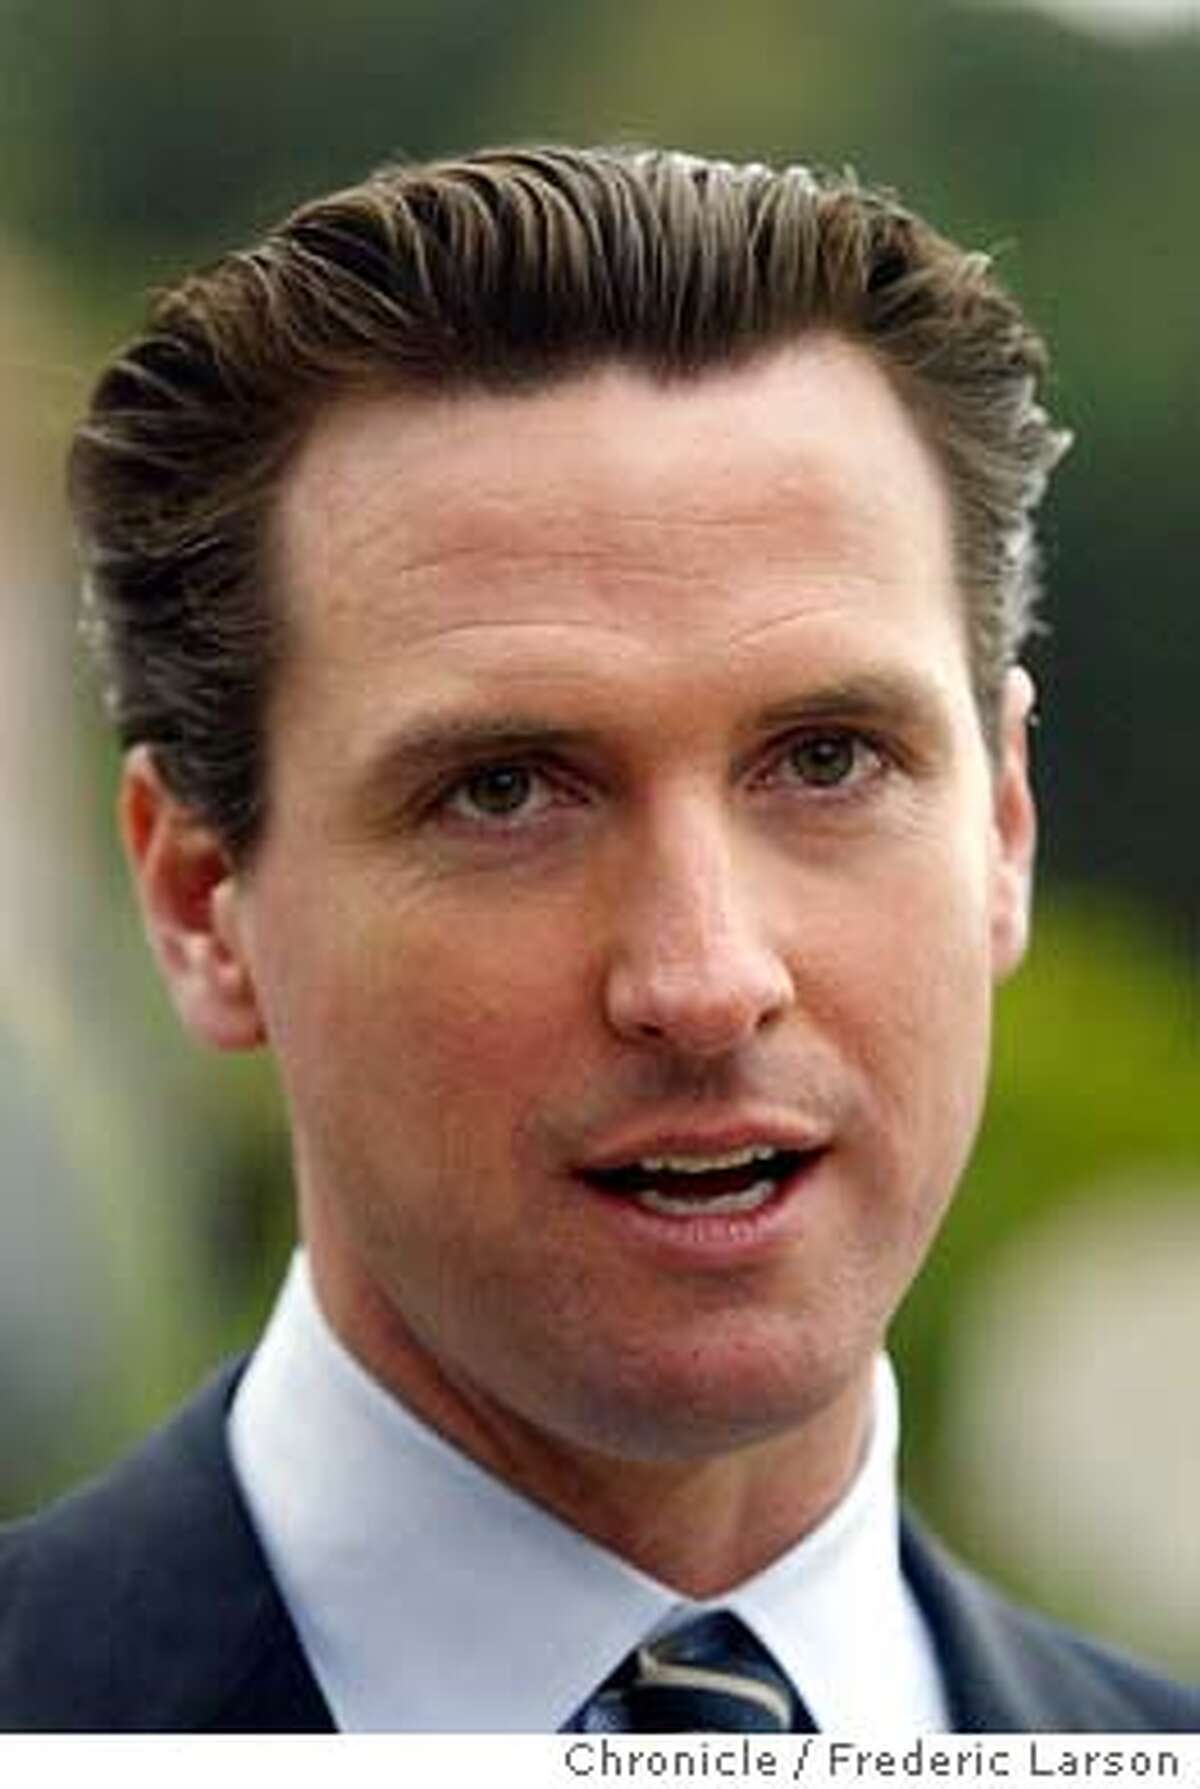 ; Gavin Newsom (candidate for SF mayor) after voting in the mayoral runoff election on Green Street near Lyon Street where Newsome is hopeful in winning over Matt Gonzalez. The Chronicle;